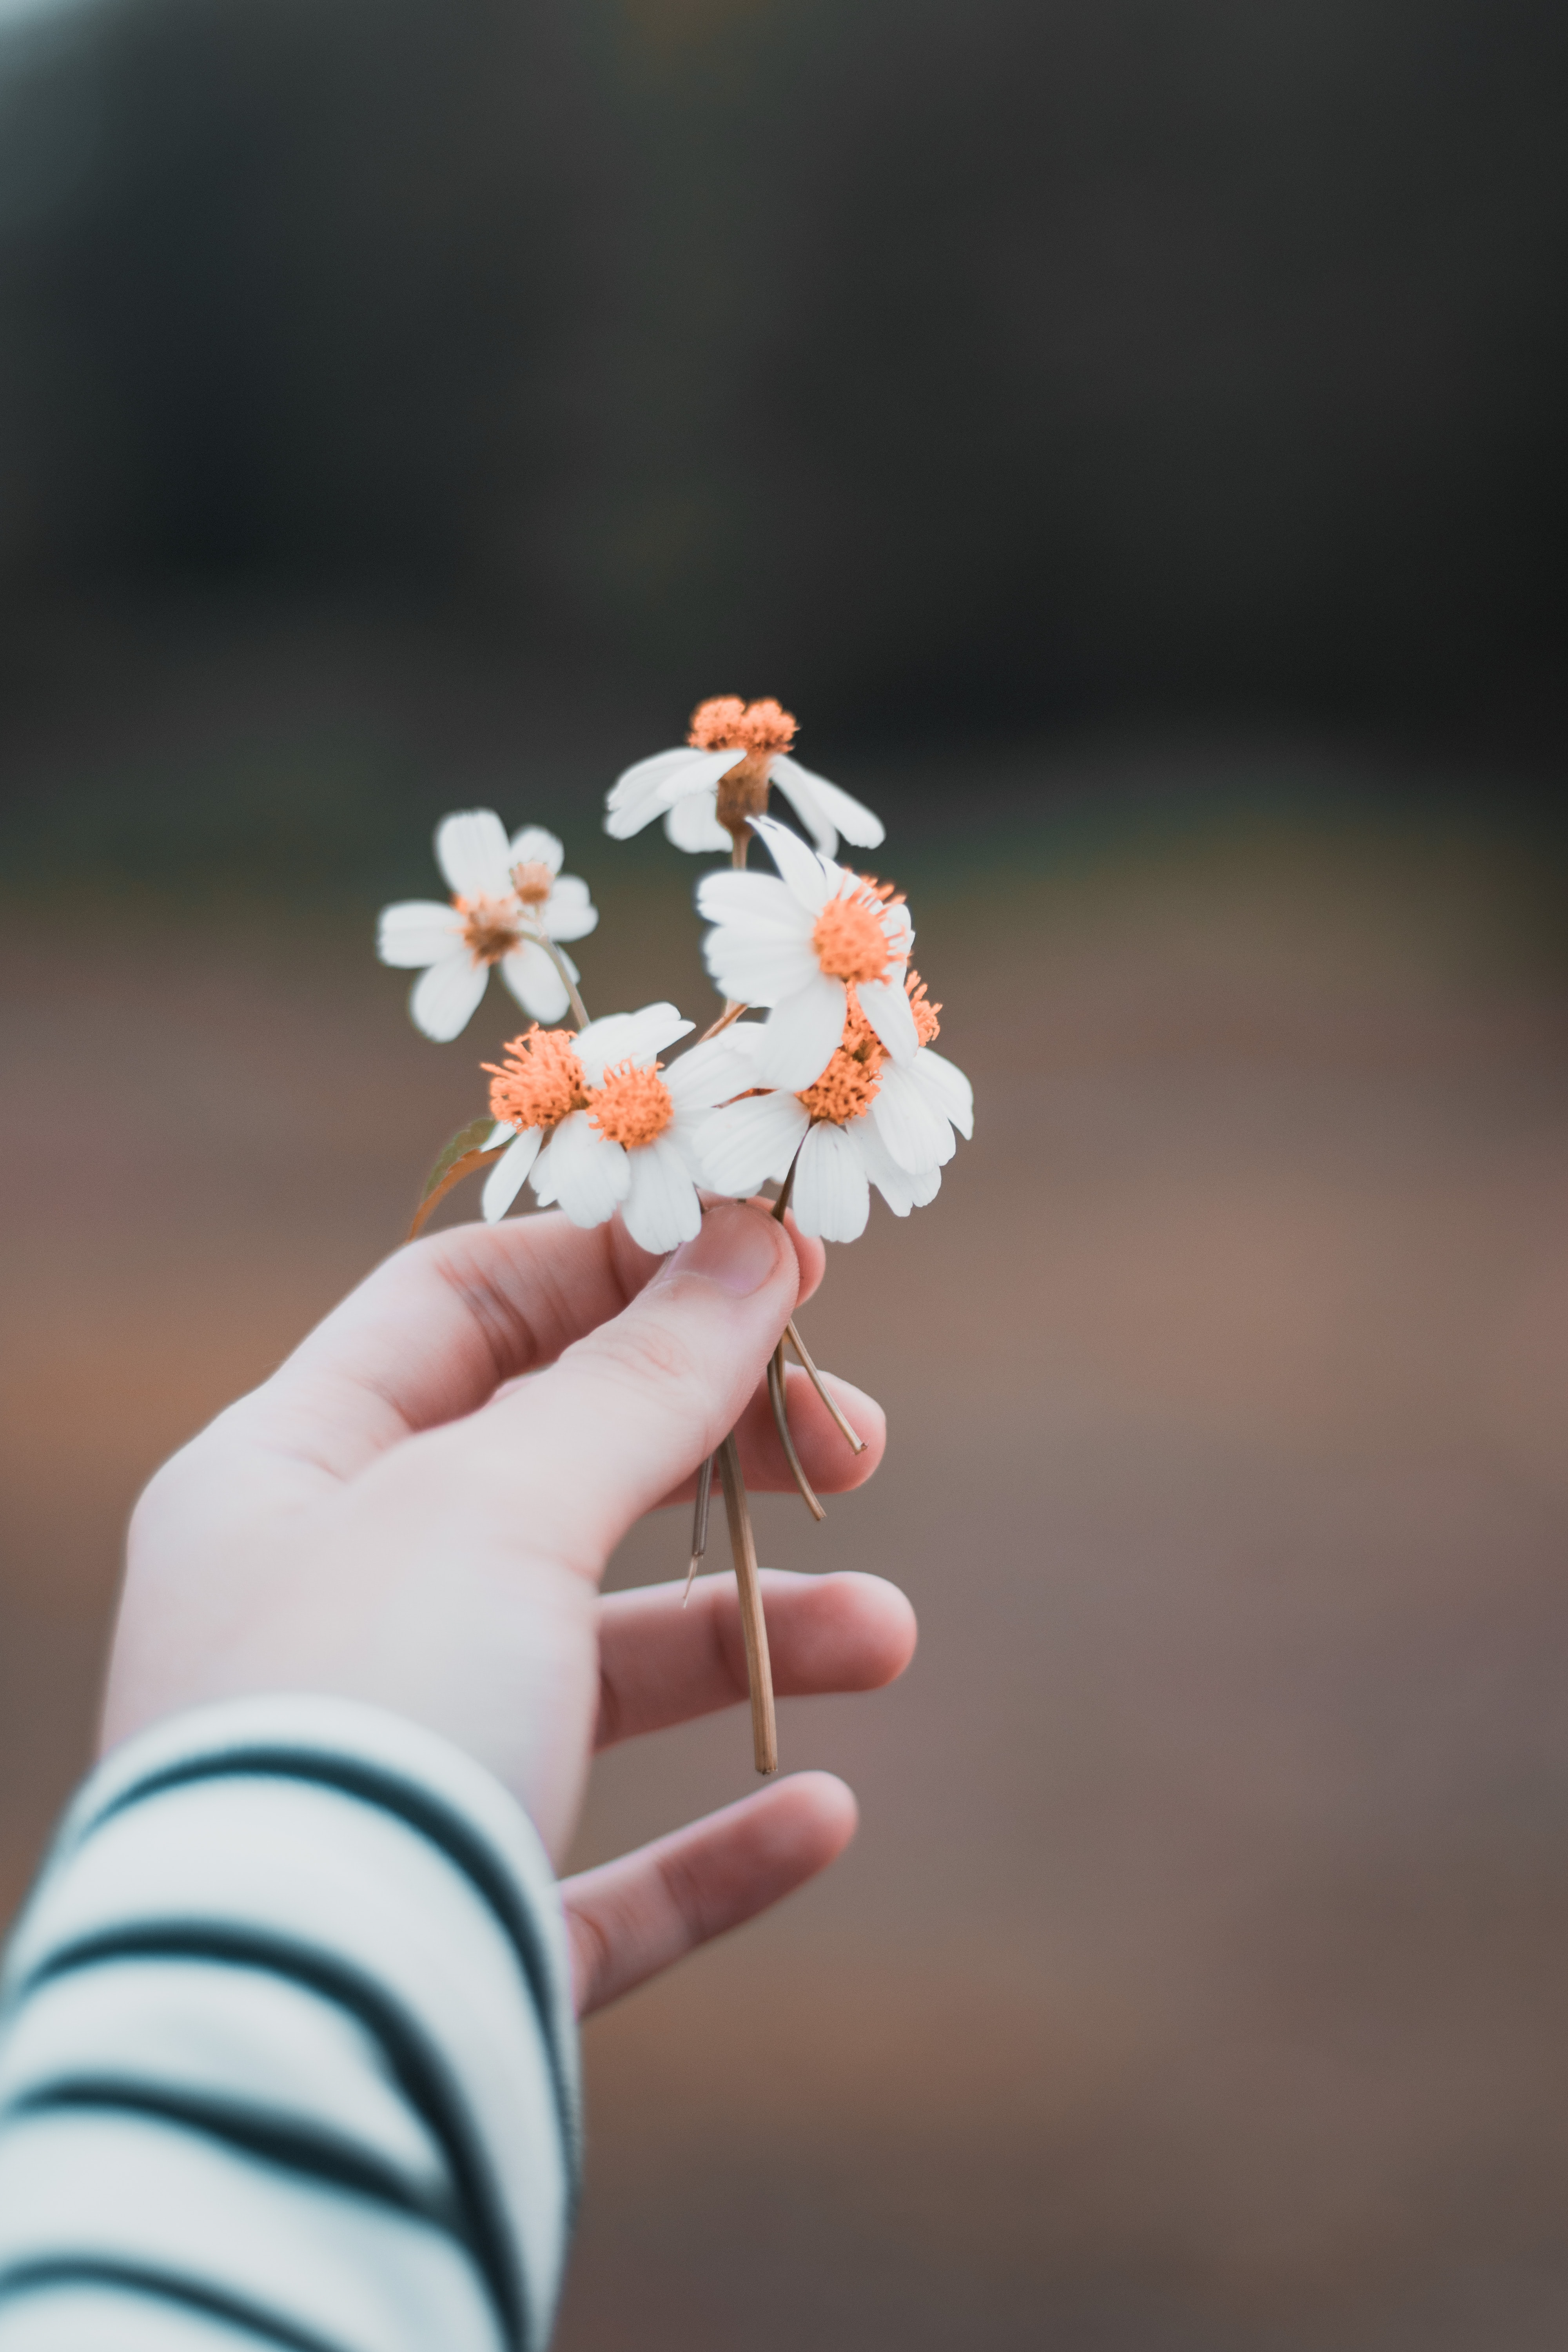 selective focus photography of person holding white petaled flowers